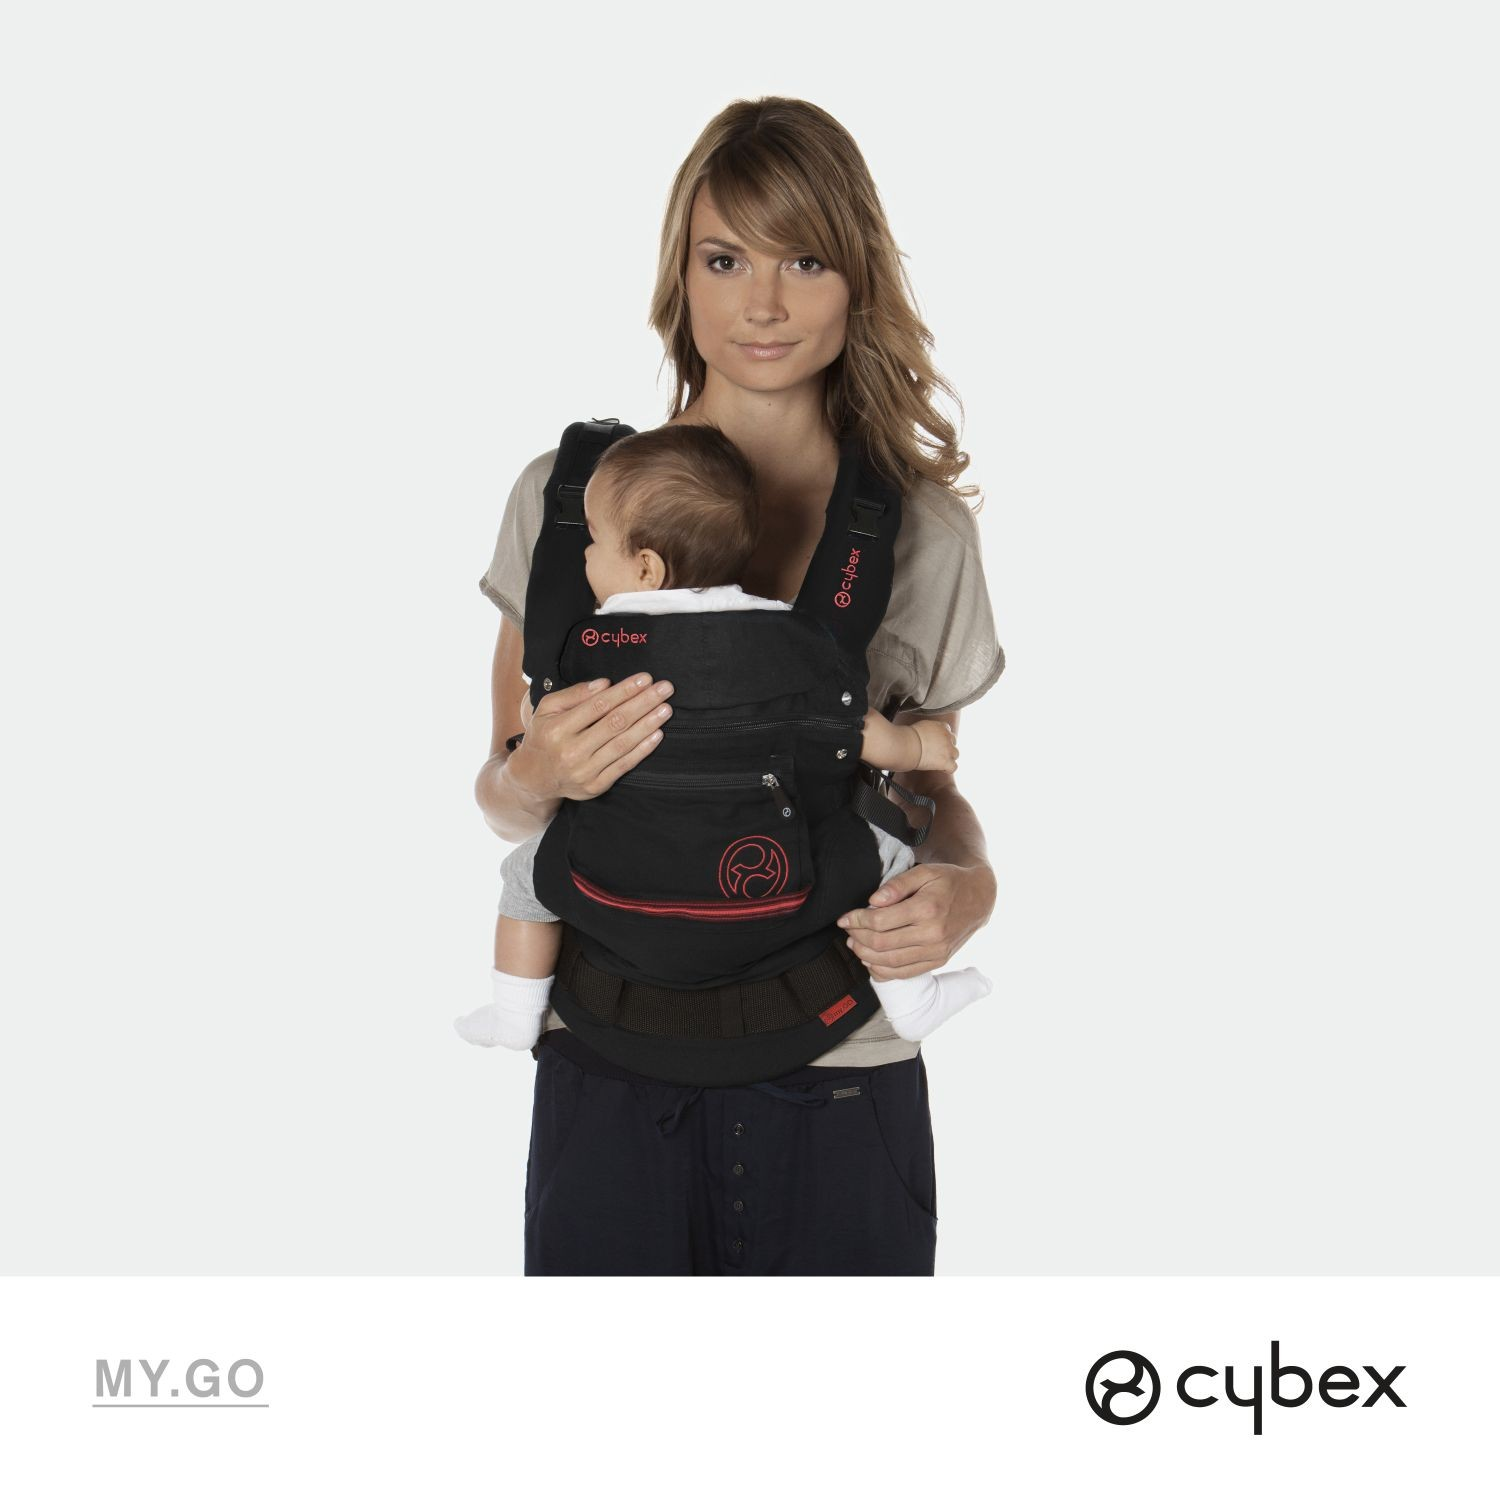 Cybex MY.GO Babytrage assorted